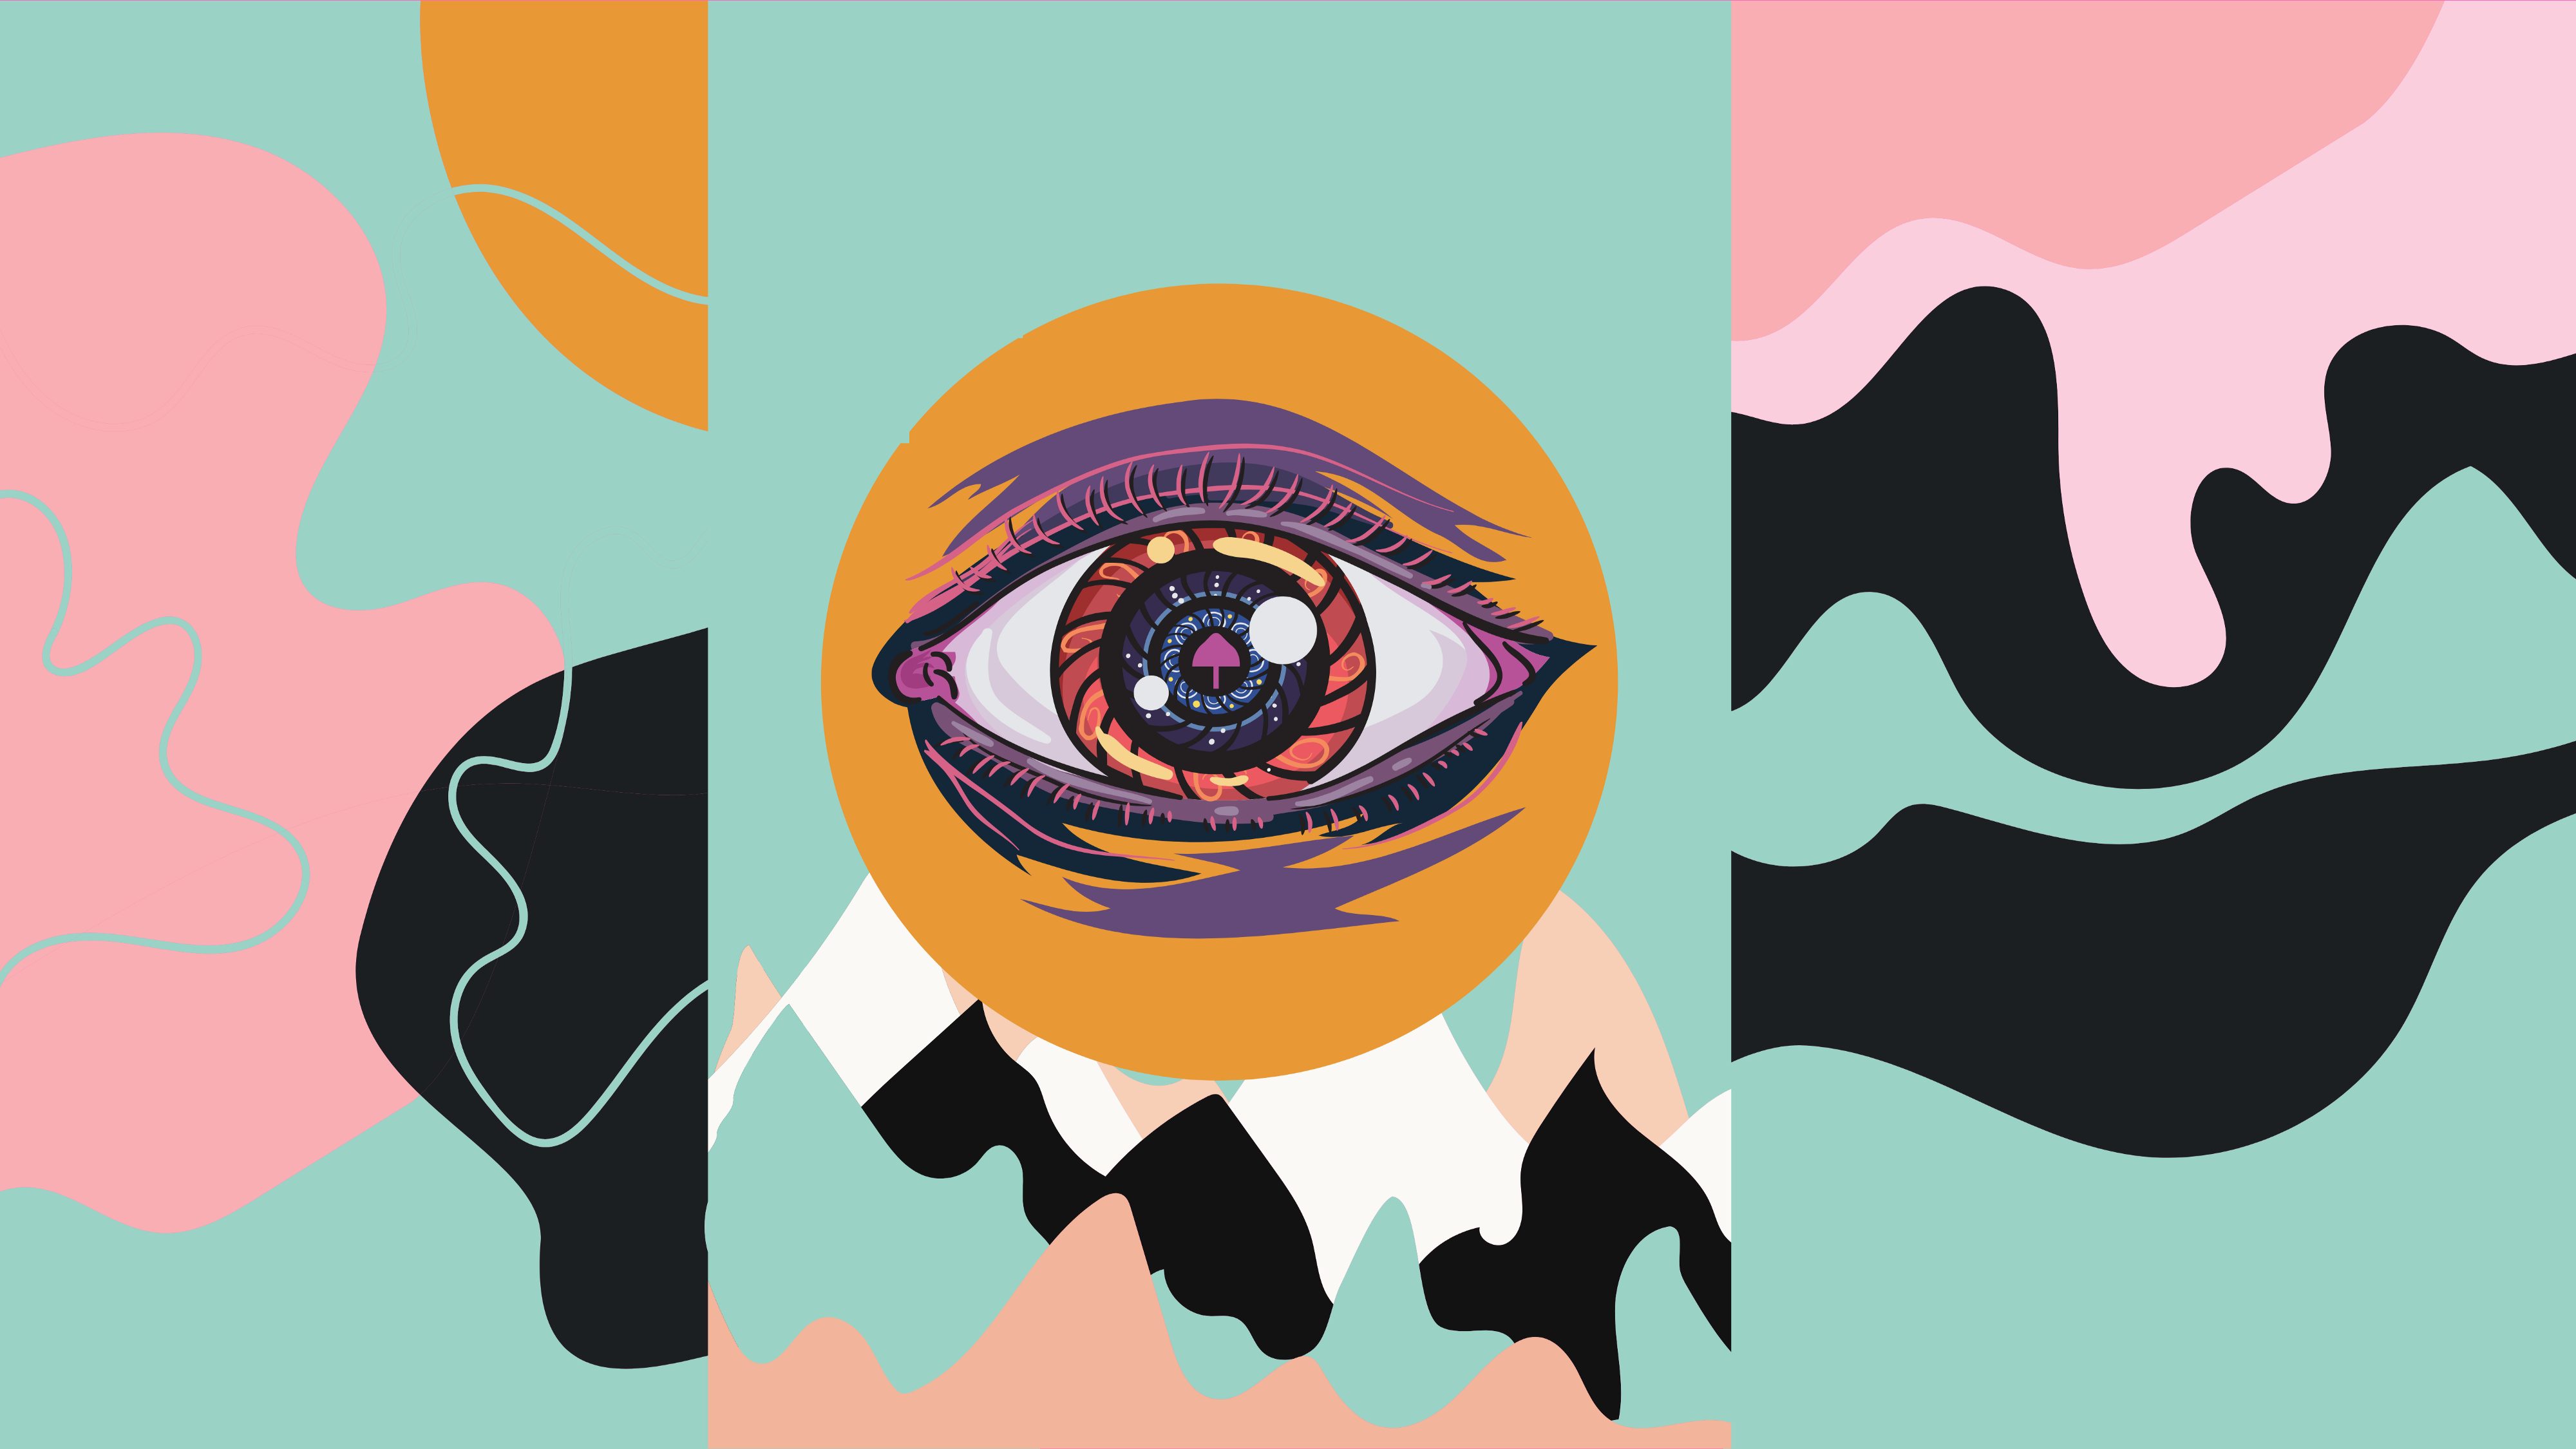 A psychedelics purple eye with a mushroom in the middle, on a colorful background.